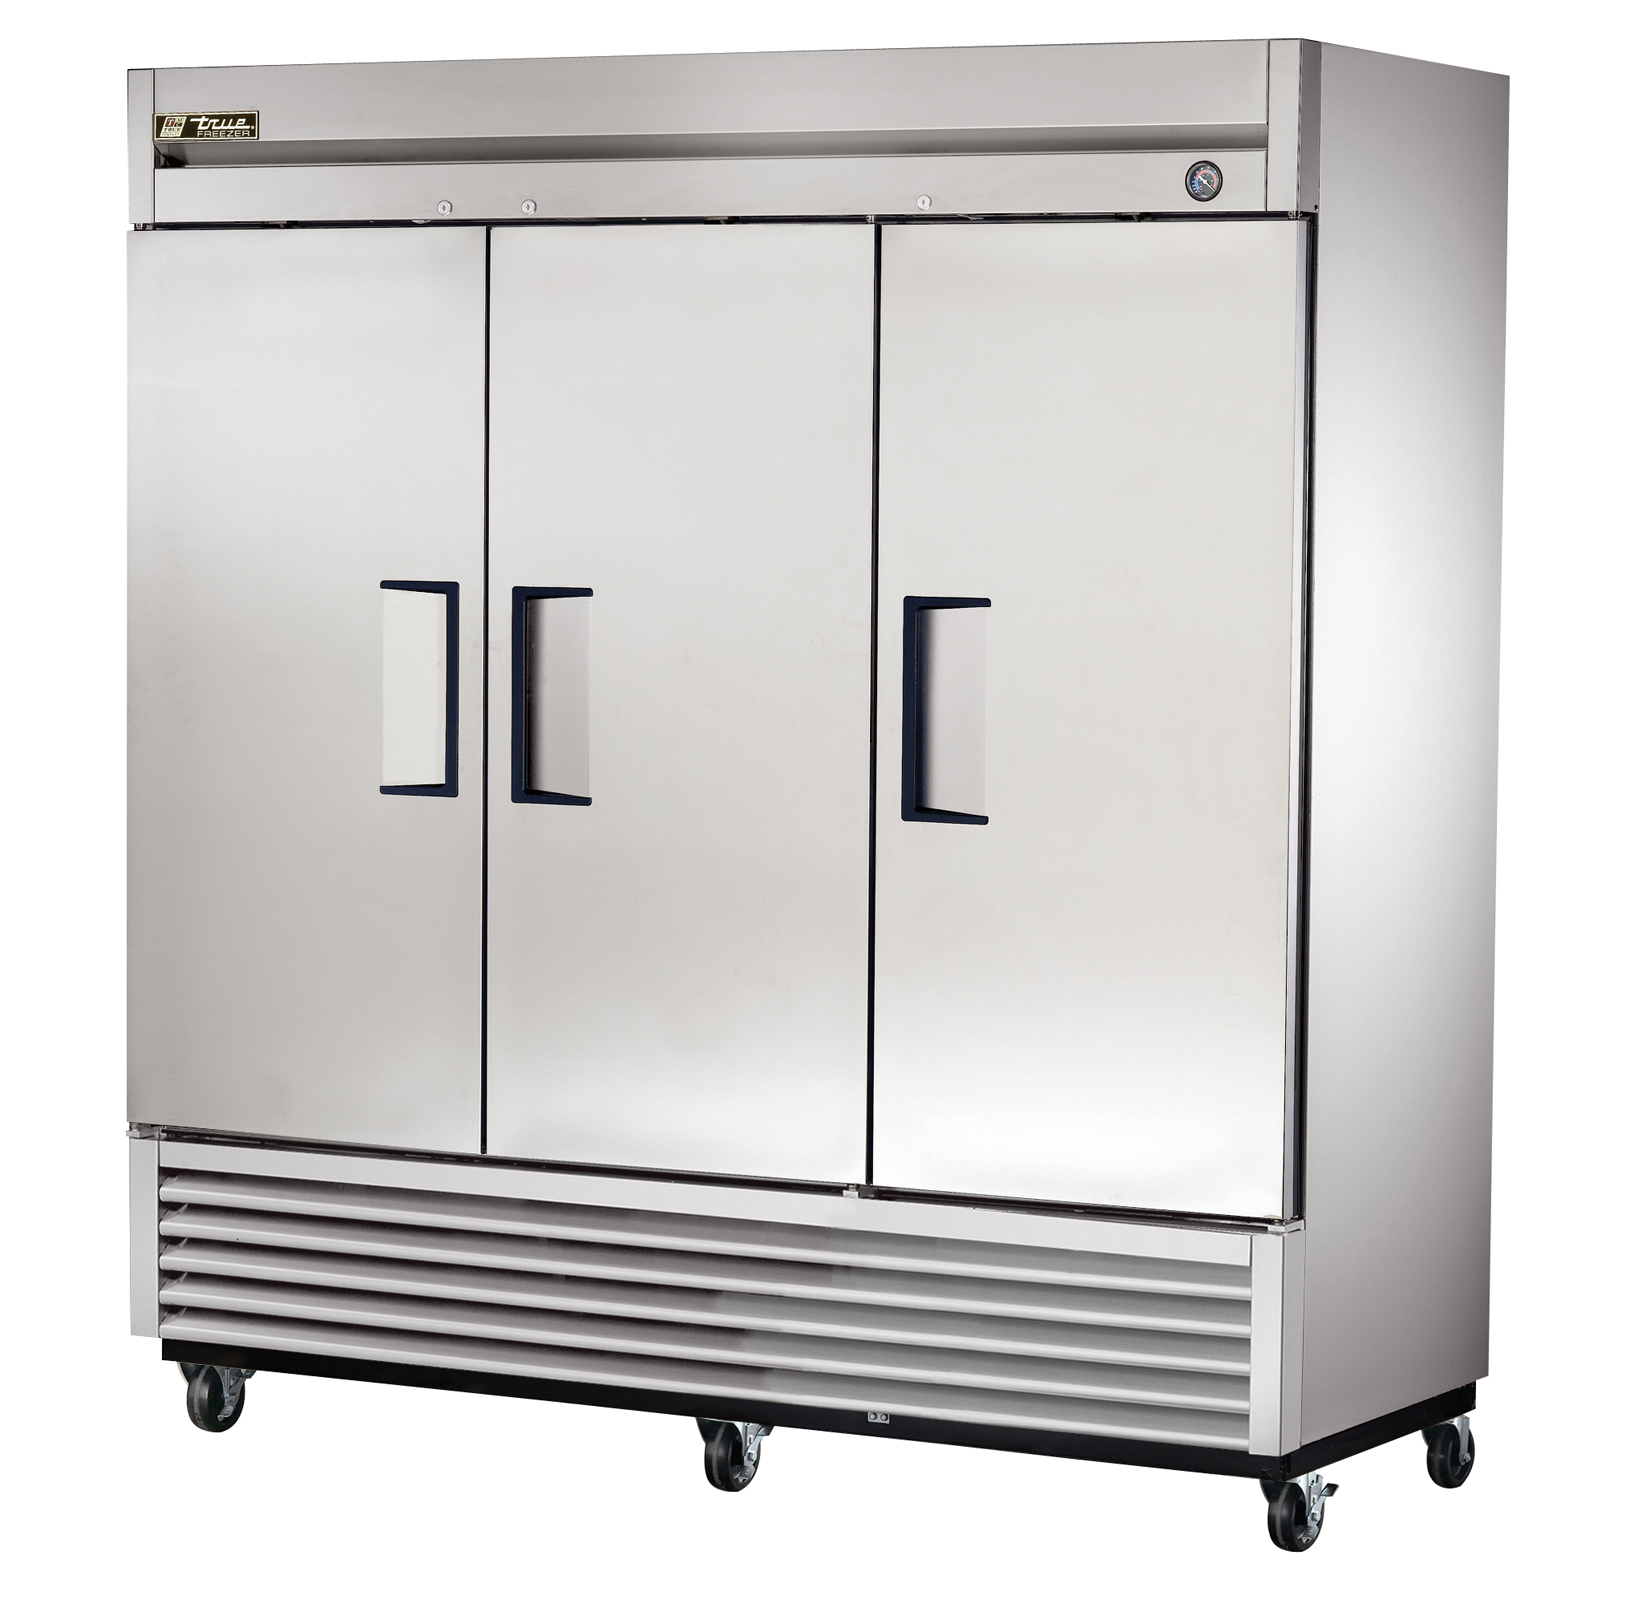 Commercial Freezers Cover Image